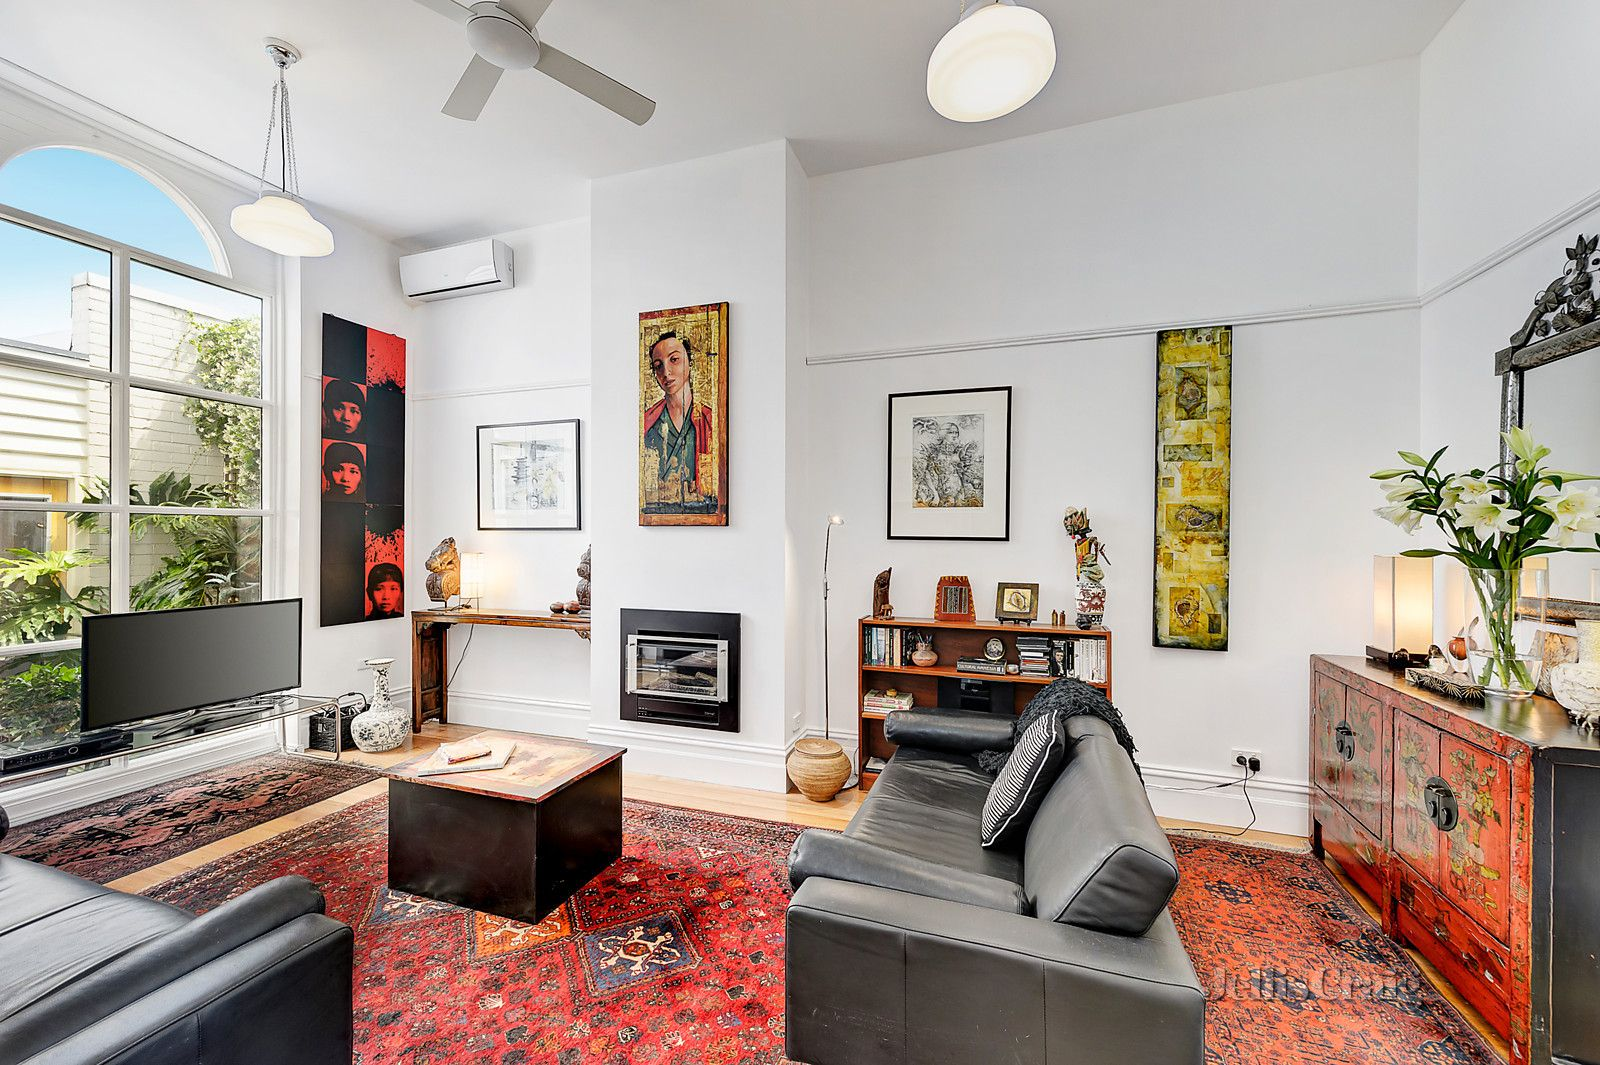 3 bedroom house for sale at 31 Council Street, Clifton